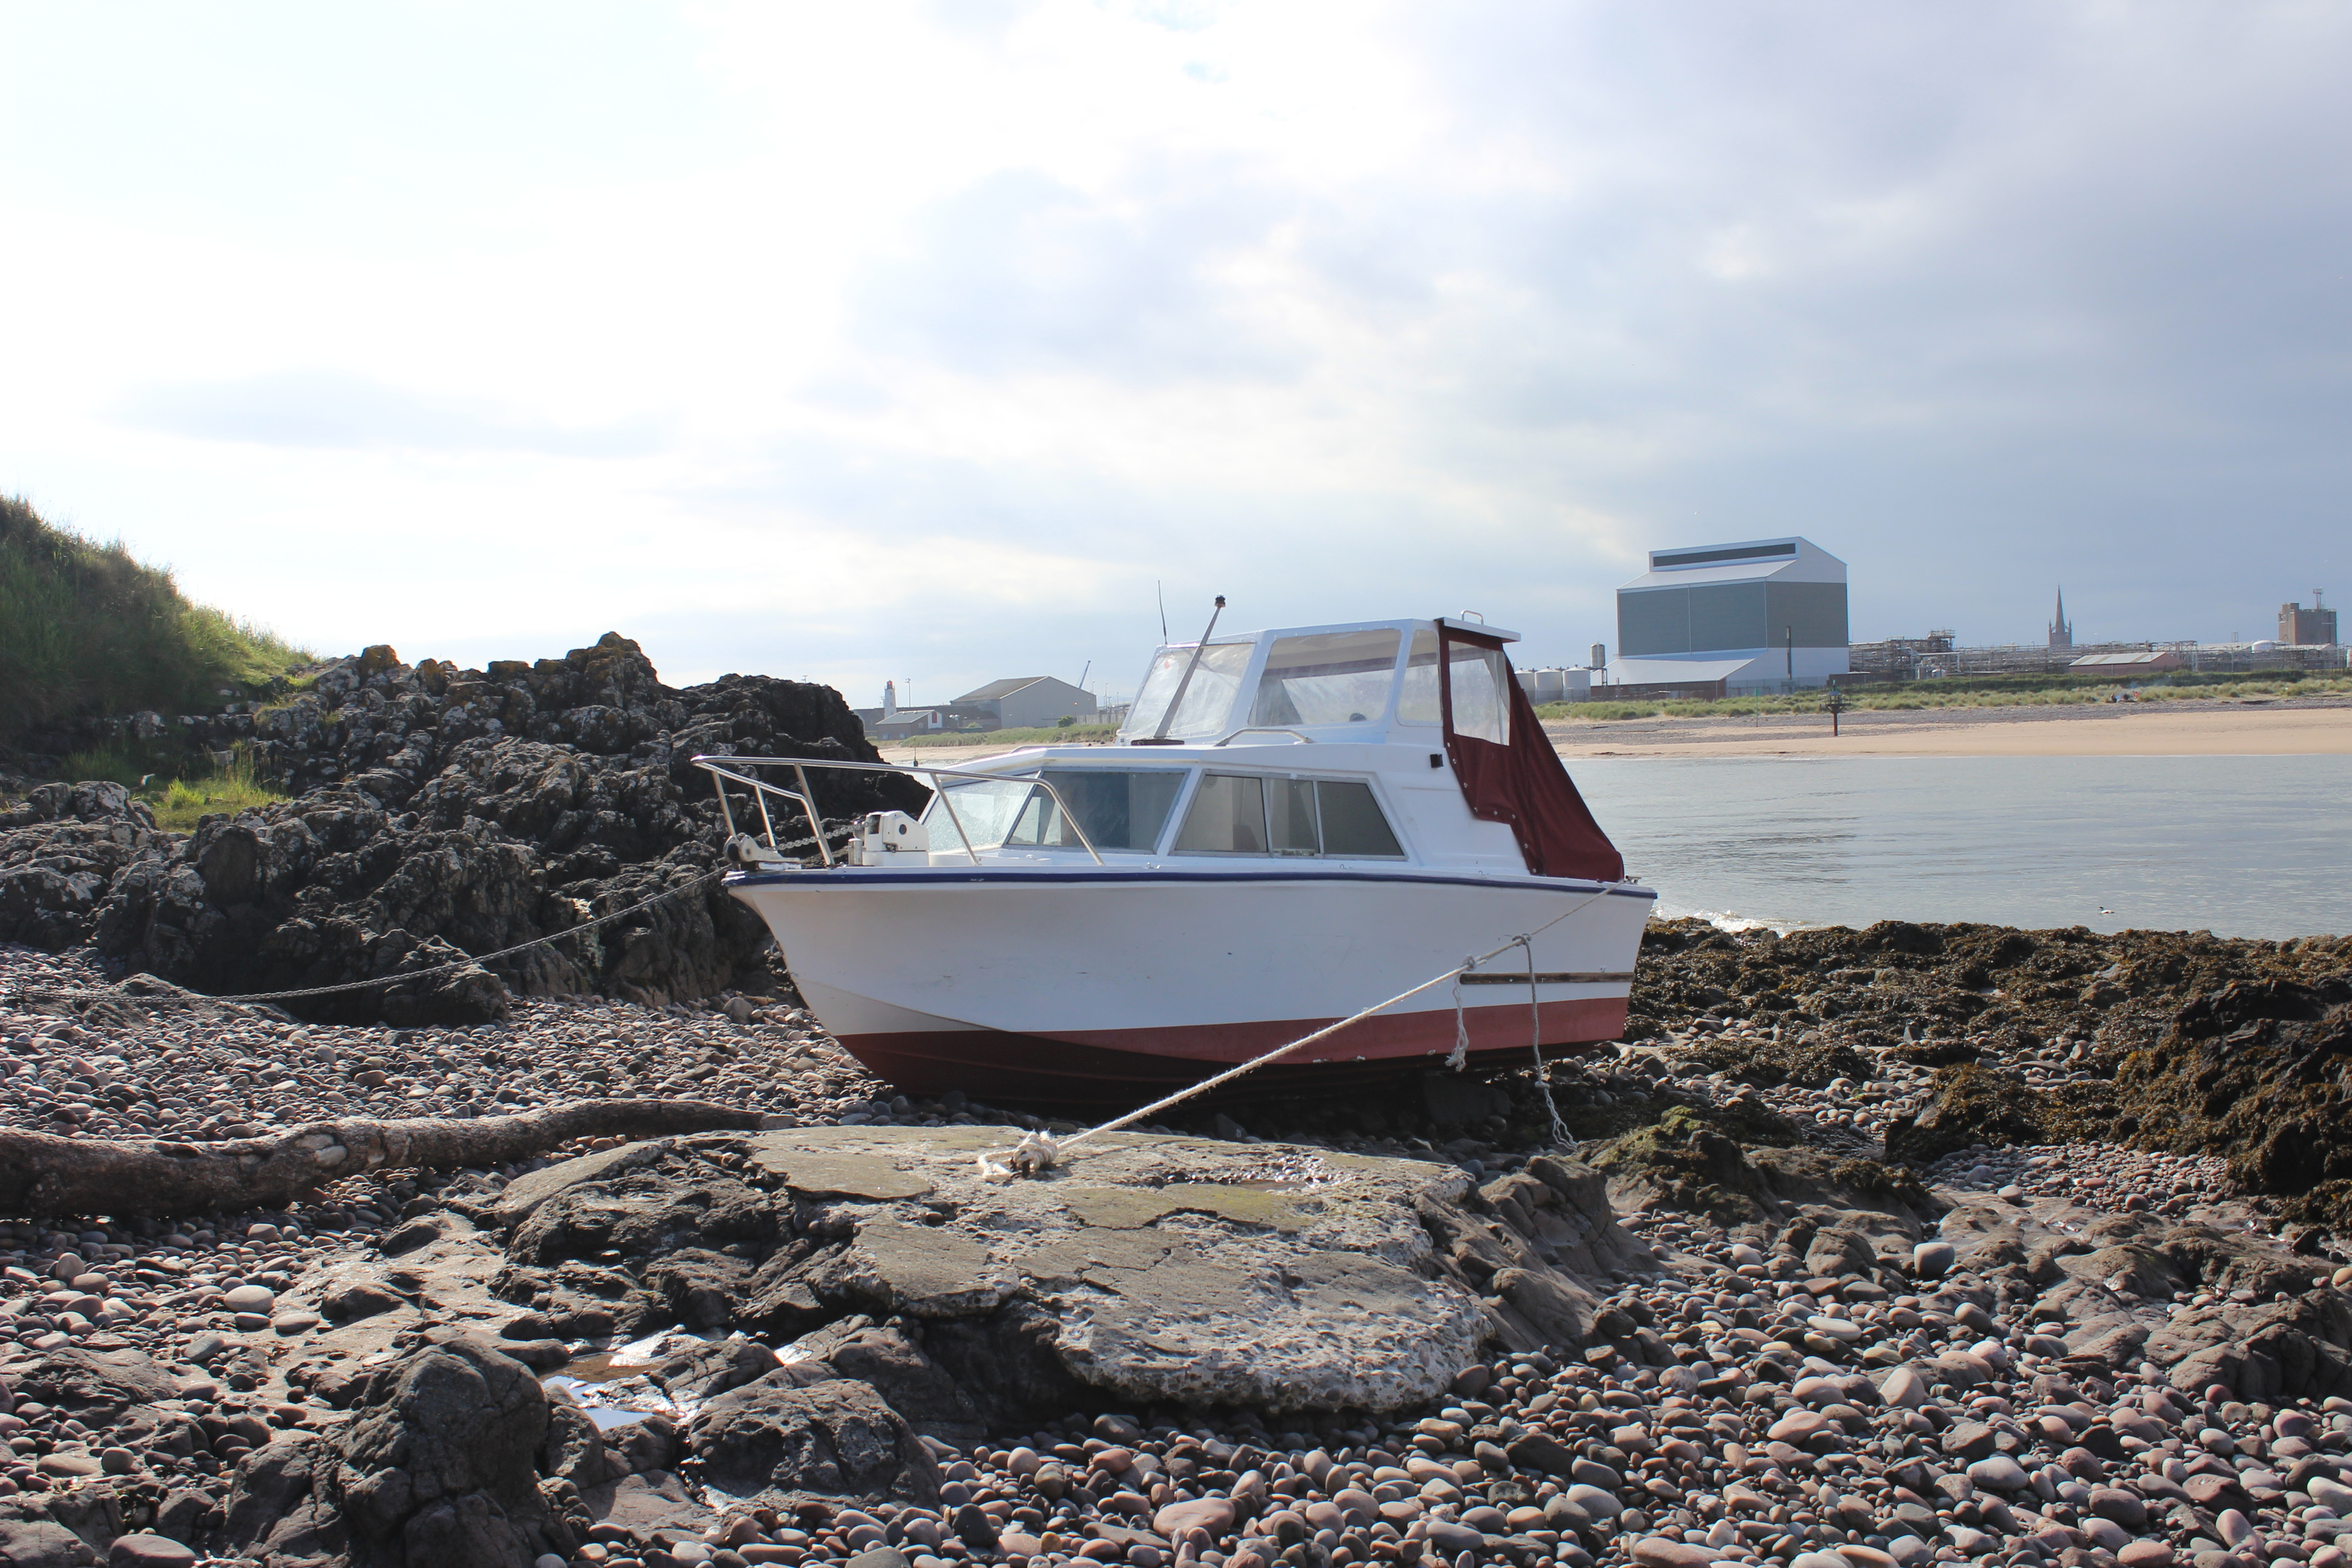 The vessel ran aground on to the rocks near Ferryden due to engine failure.